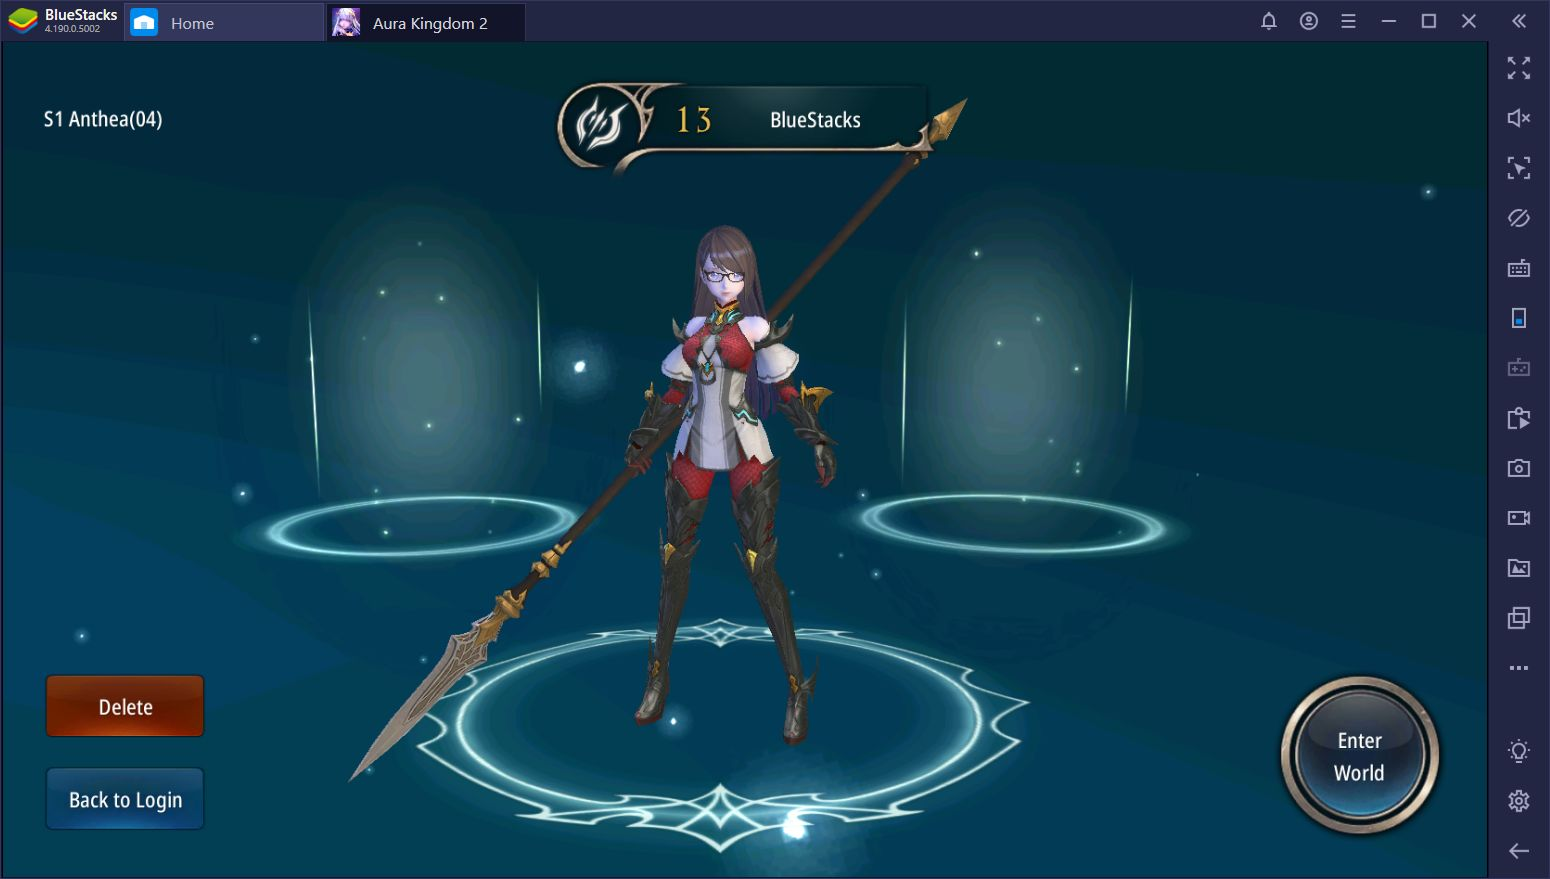 Aura Kingdom 2 on PC - A Guide to the All Playable Classes